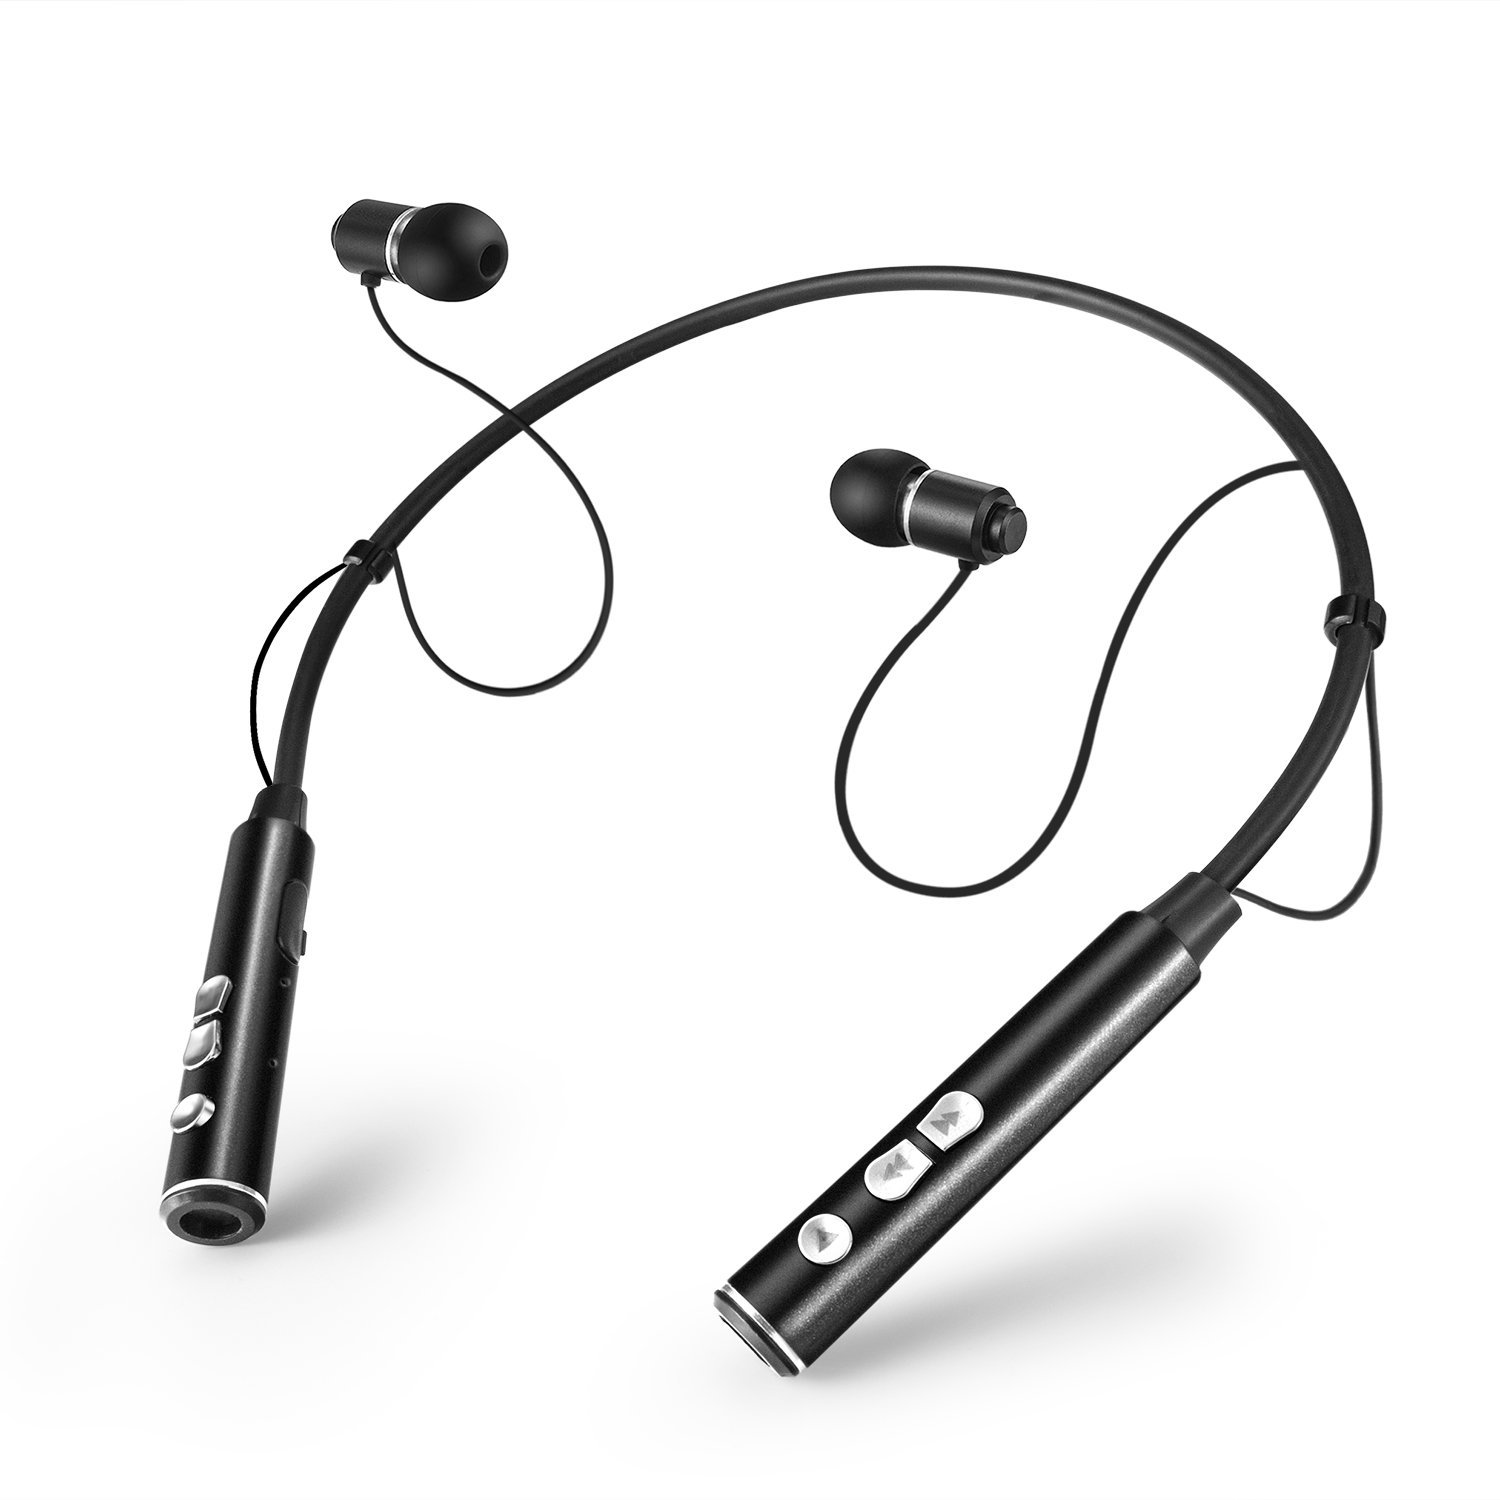 Wireless Earbuds Not Bluetooth: Amazon: Bluetooth Wireless Headphones Only $9.00 + Free Shipping! (Was $49.99